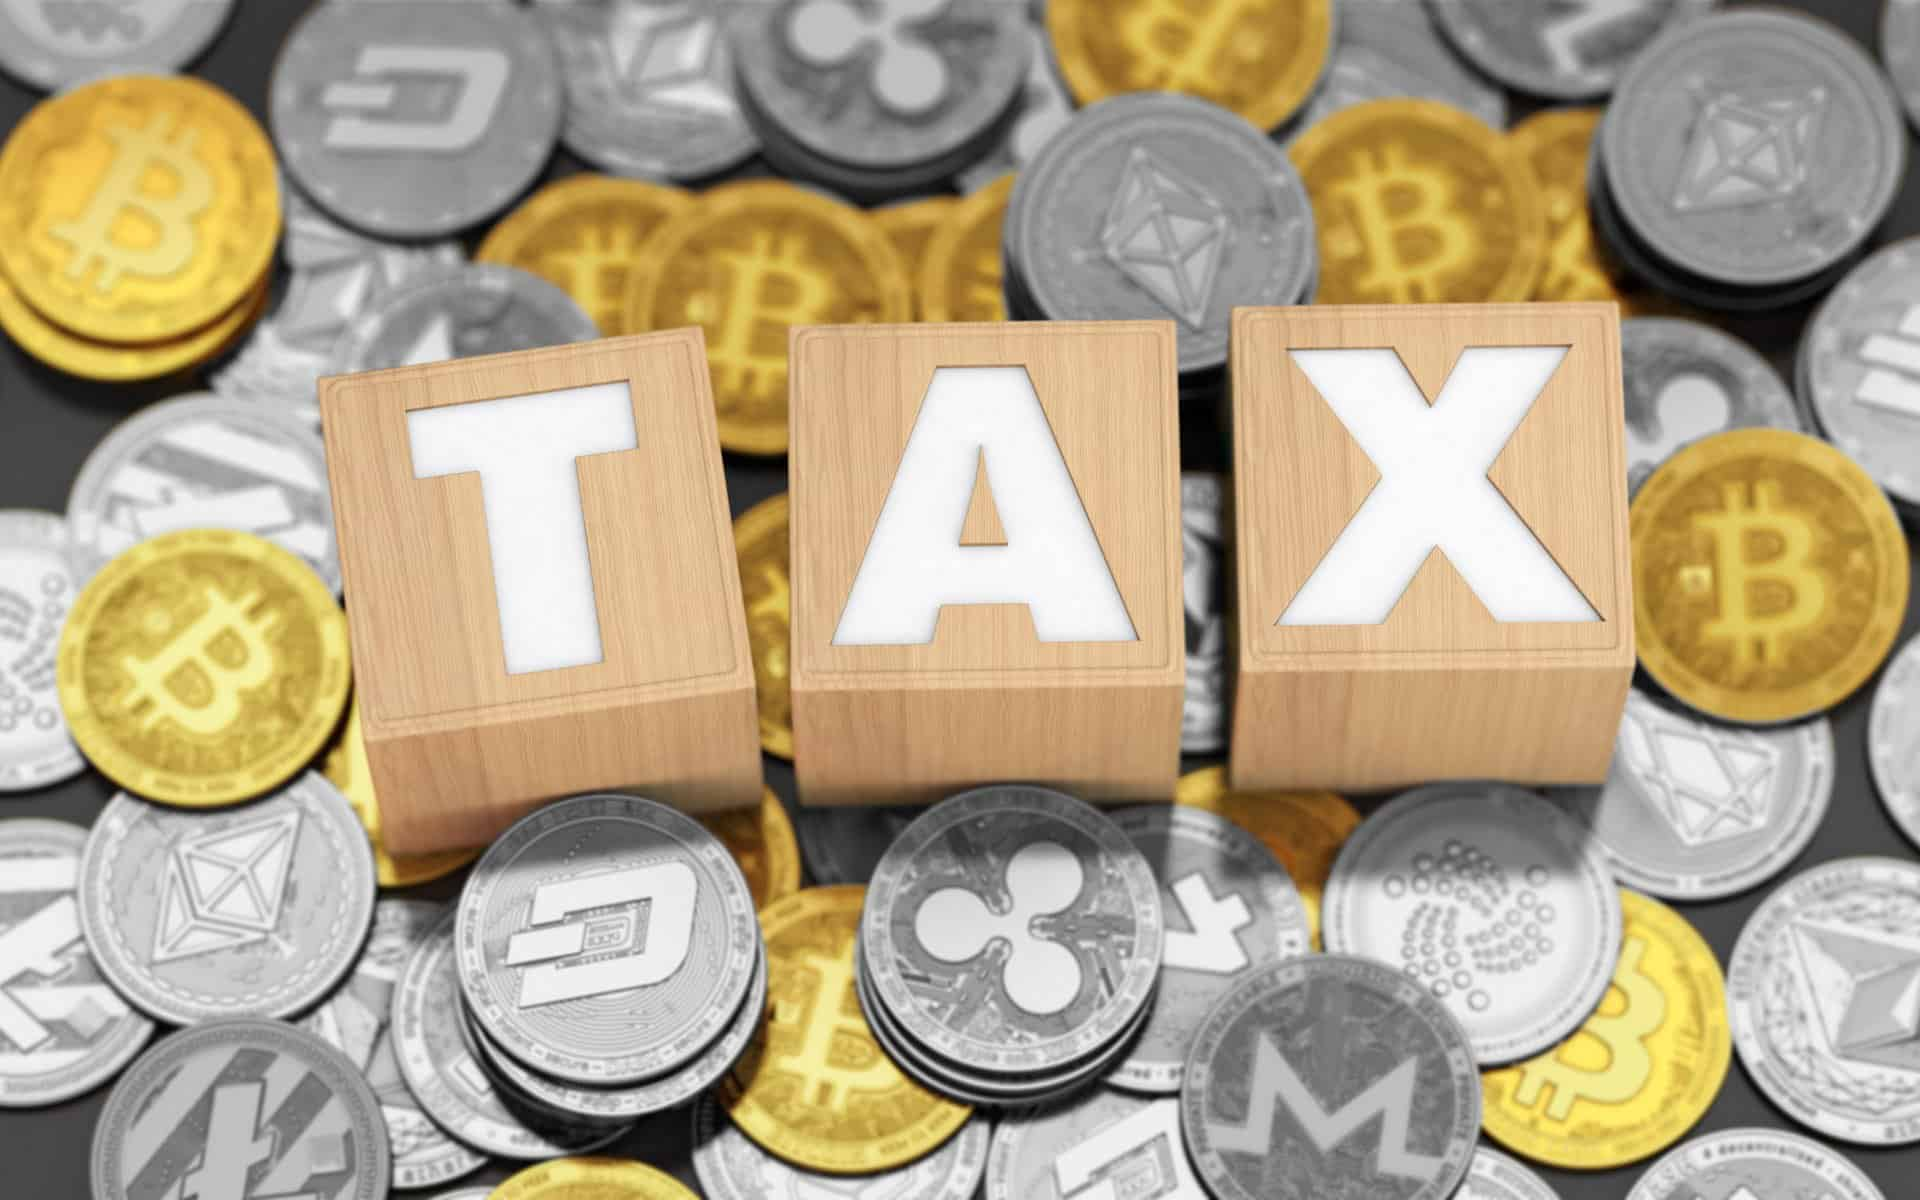 De Minimis Tax Exemption On Cryptocurrency